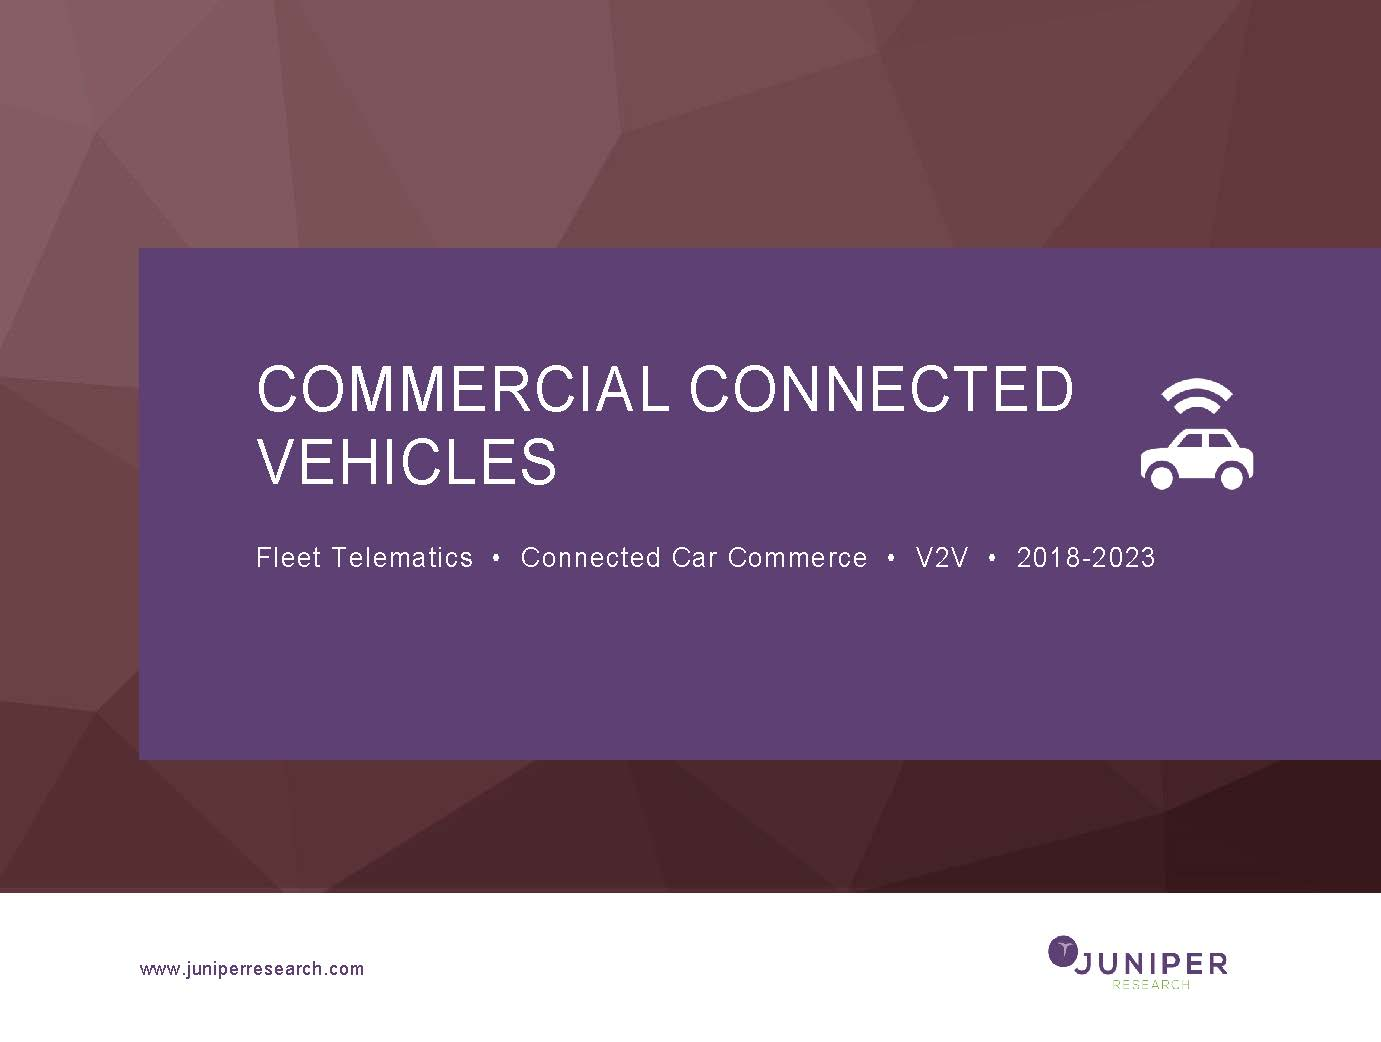 Commercial Connected Vehicles: Deep Dive Data 2018-2023